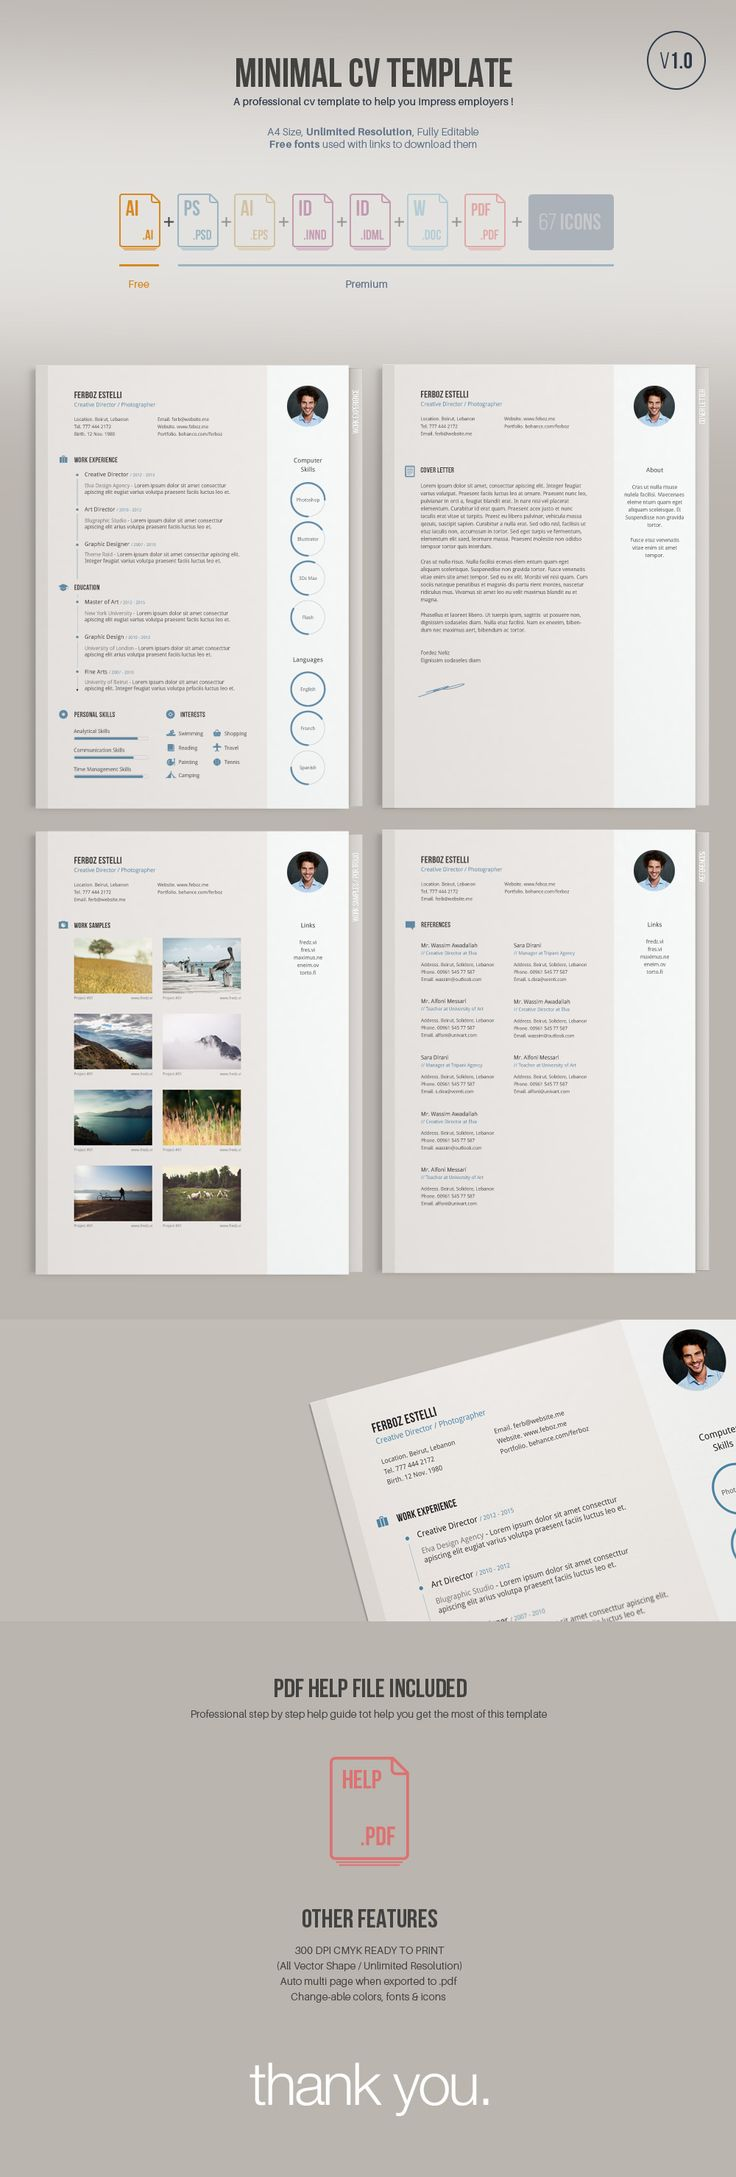 a minimal easy to edit free resume template free version comes in